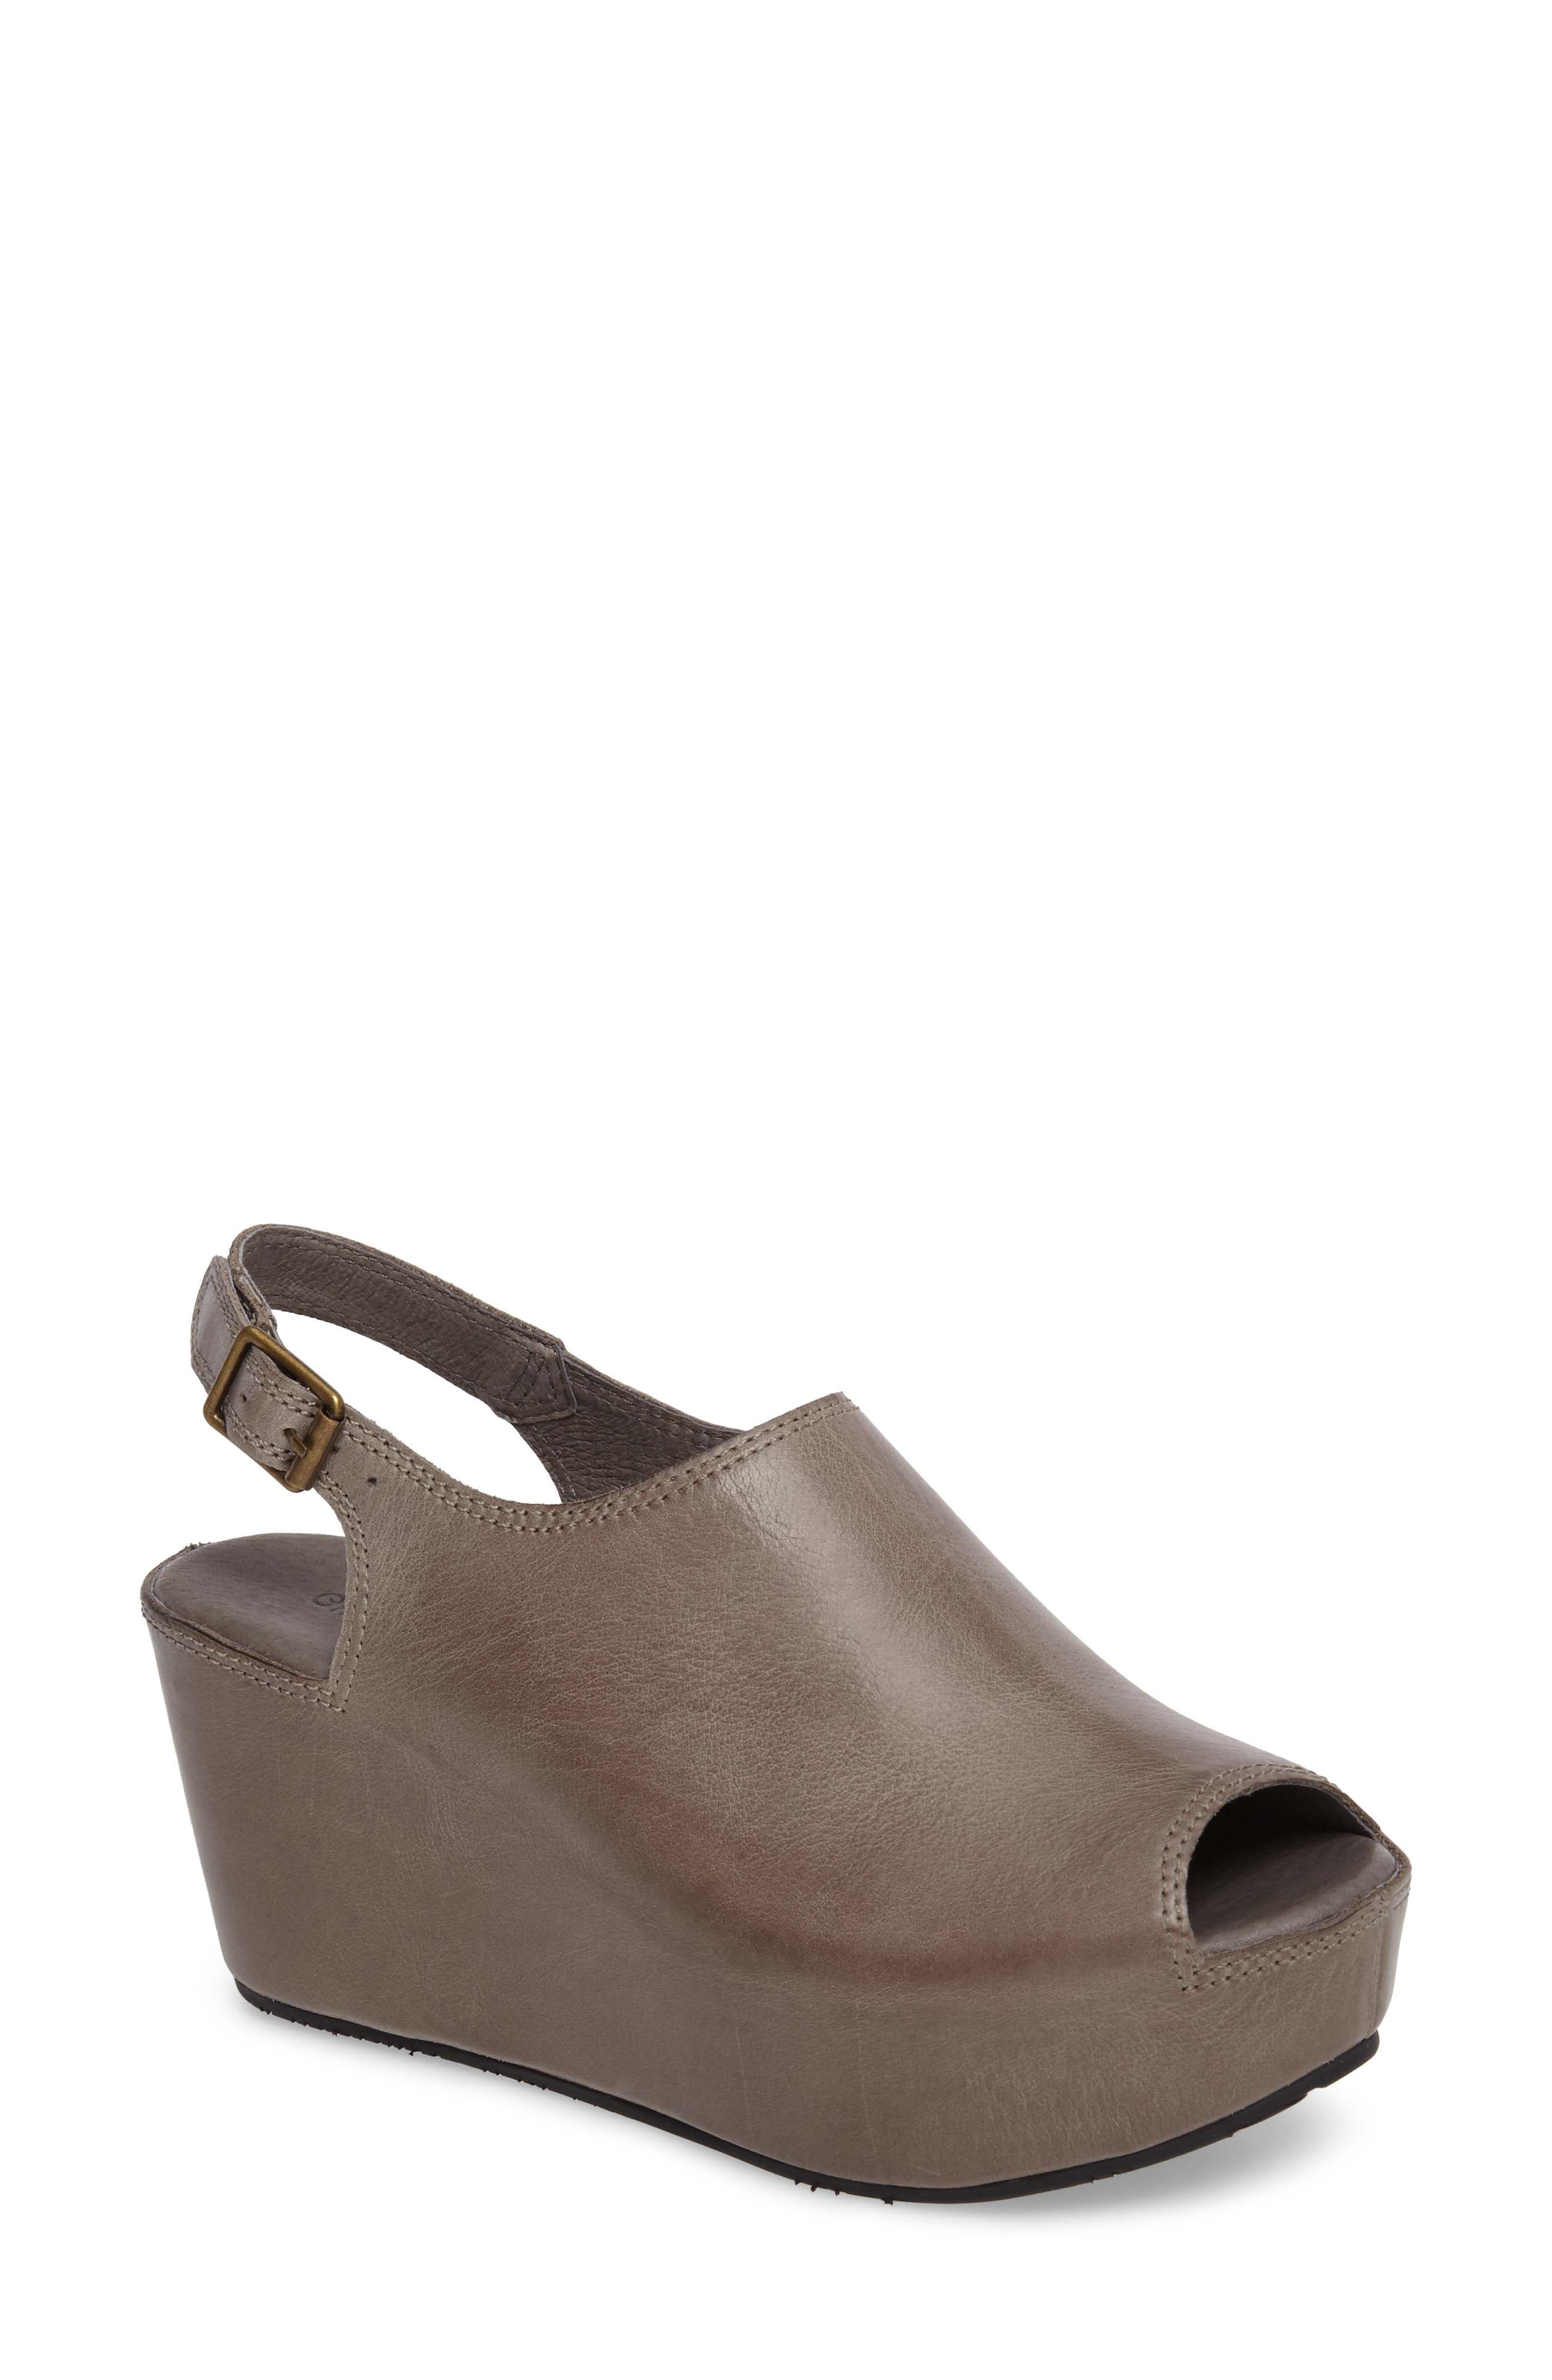 Willow Slingback Wedge,                             Main thumbnail 1, color,                             GRAPHITE LEATHER